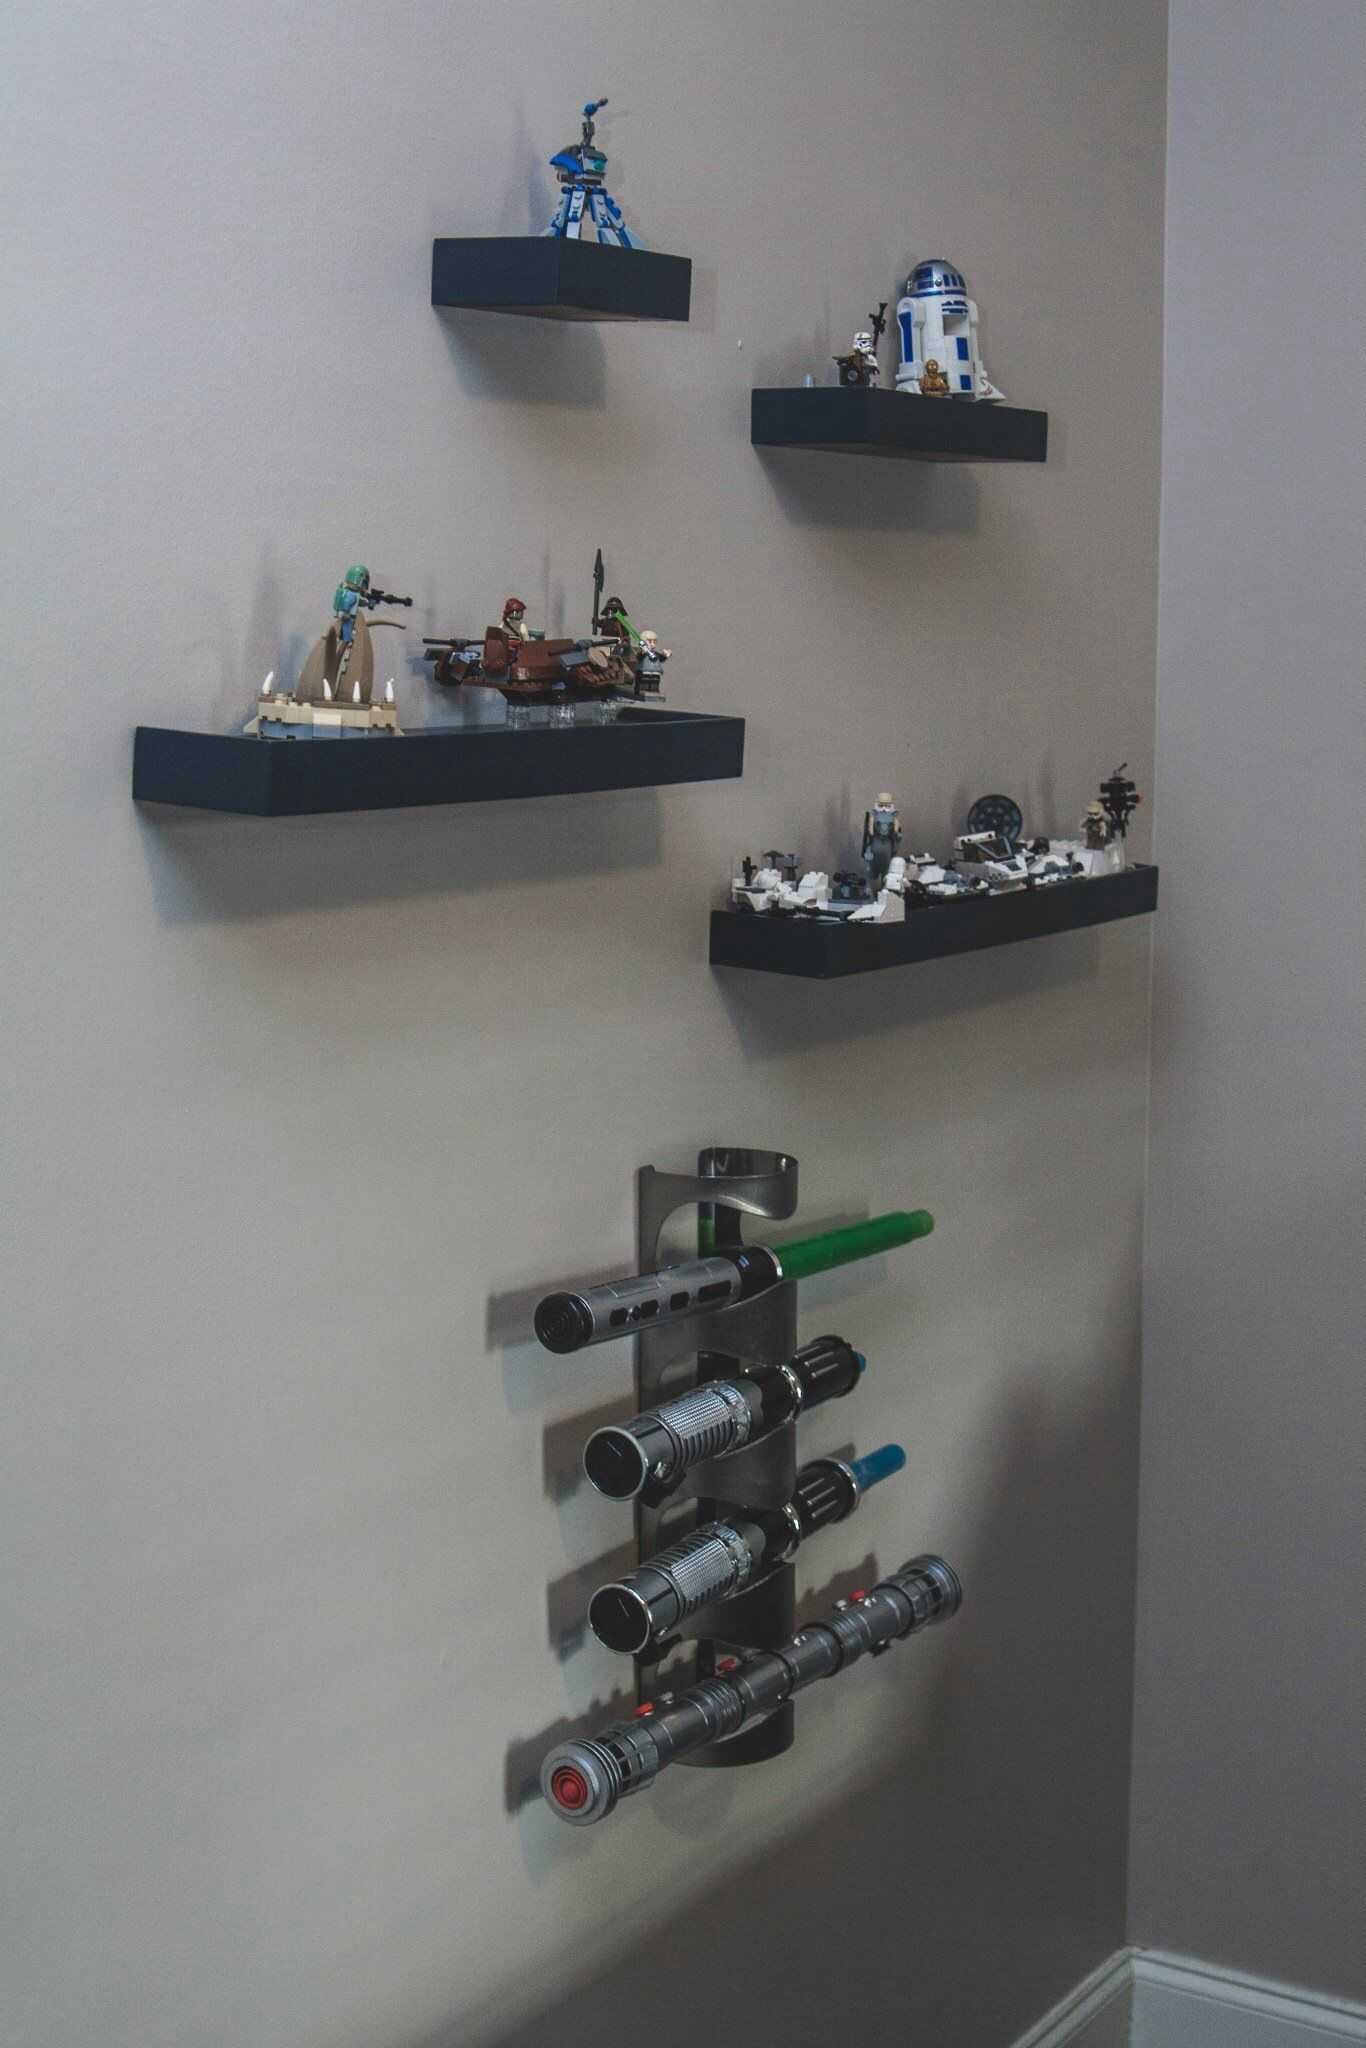 Our 7 year old asked for a Star Wars room for Christmas